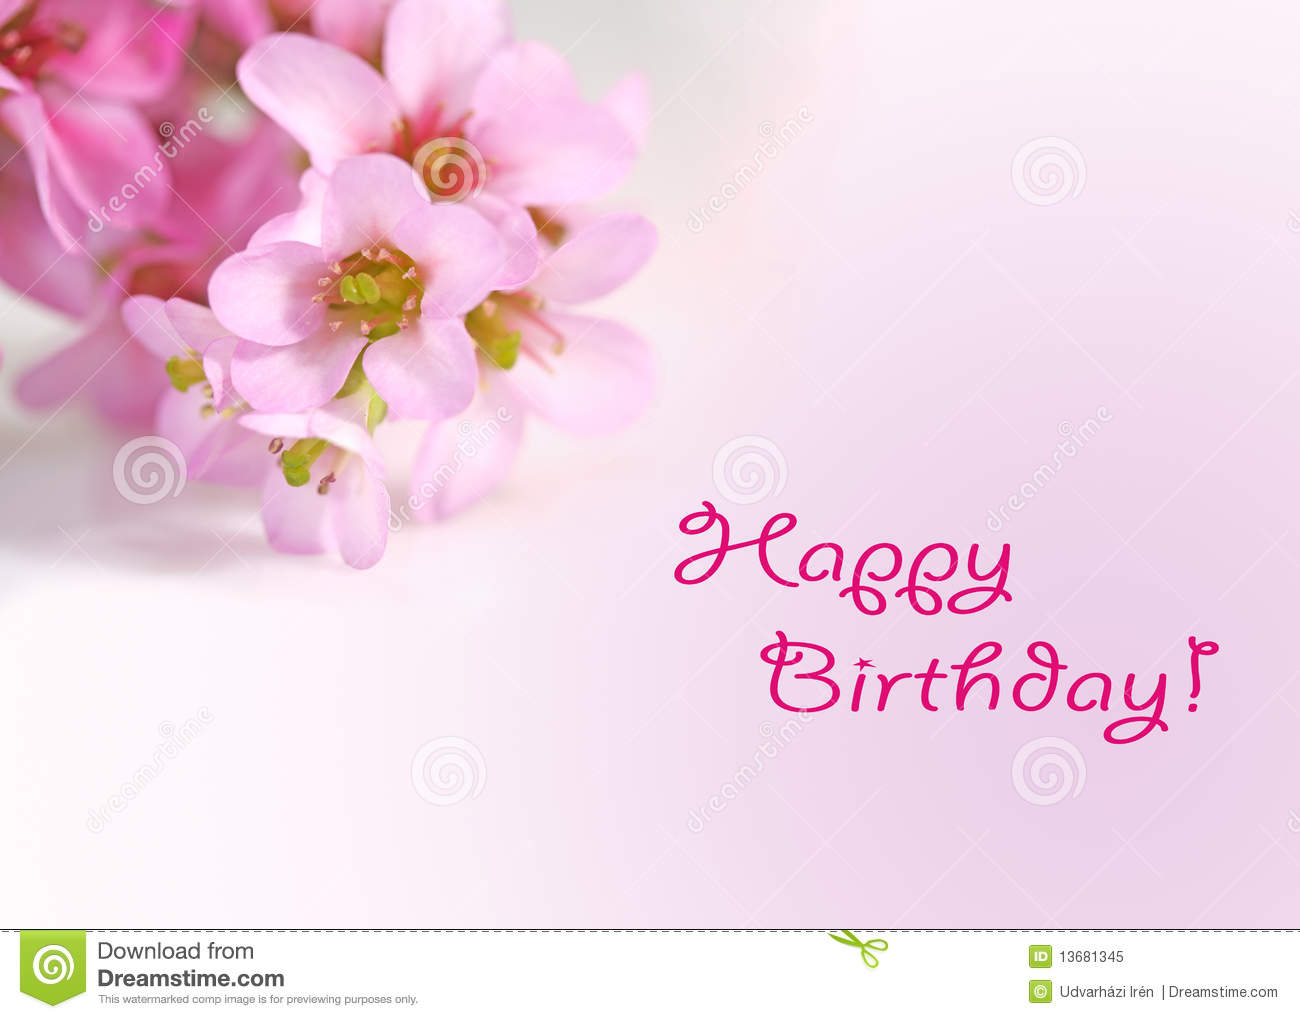 Happy Birthday Greetings Card Flowers Stock Photos 542 Images